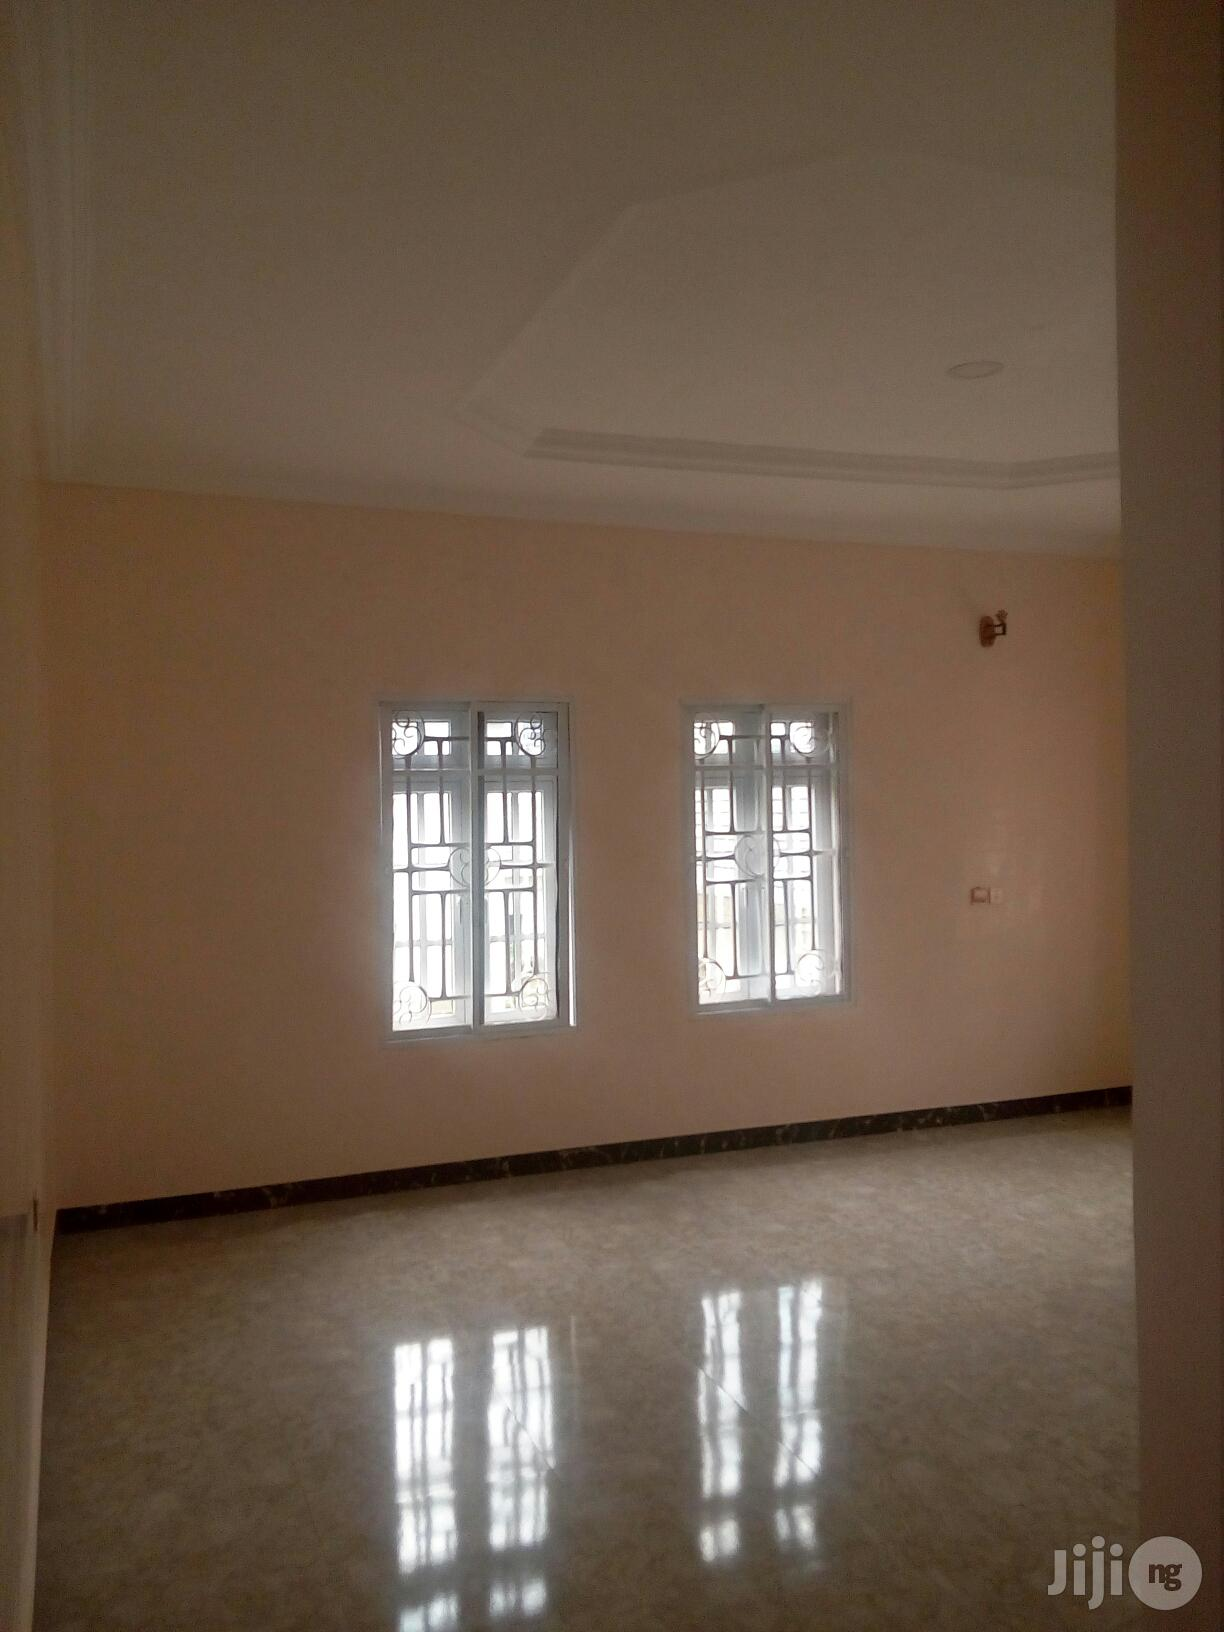 Fully Detached 5bedrooms Duplex With 2rooms BQ For Quick Sale | Houses & Apartments For Sale for sale in Gwarinpa, Abuja (FCT) State, Nigeria